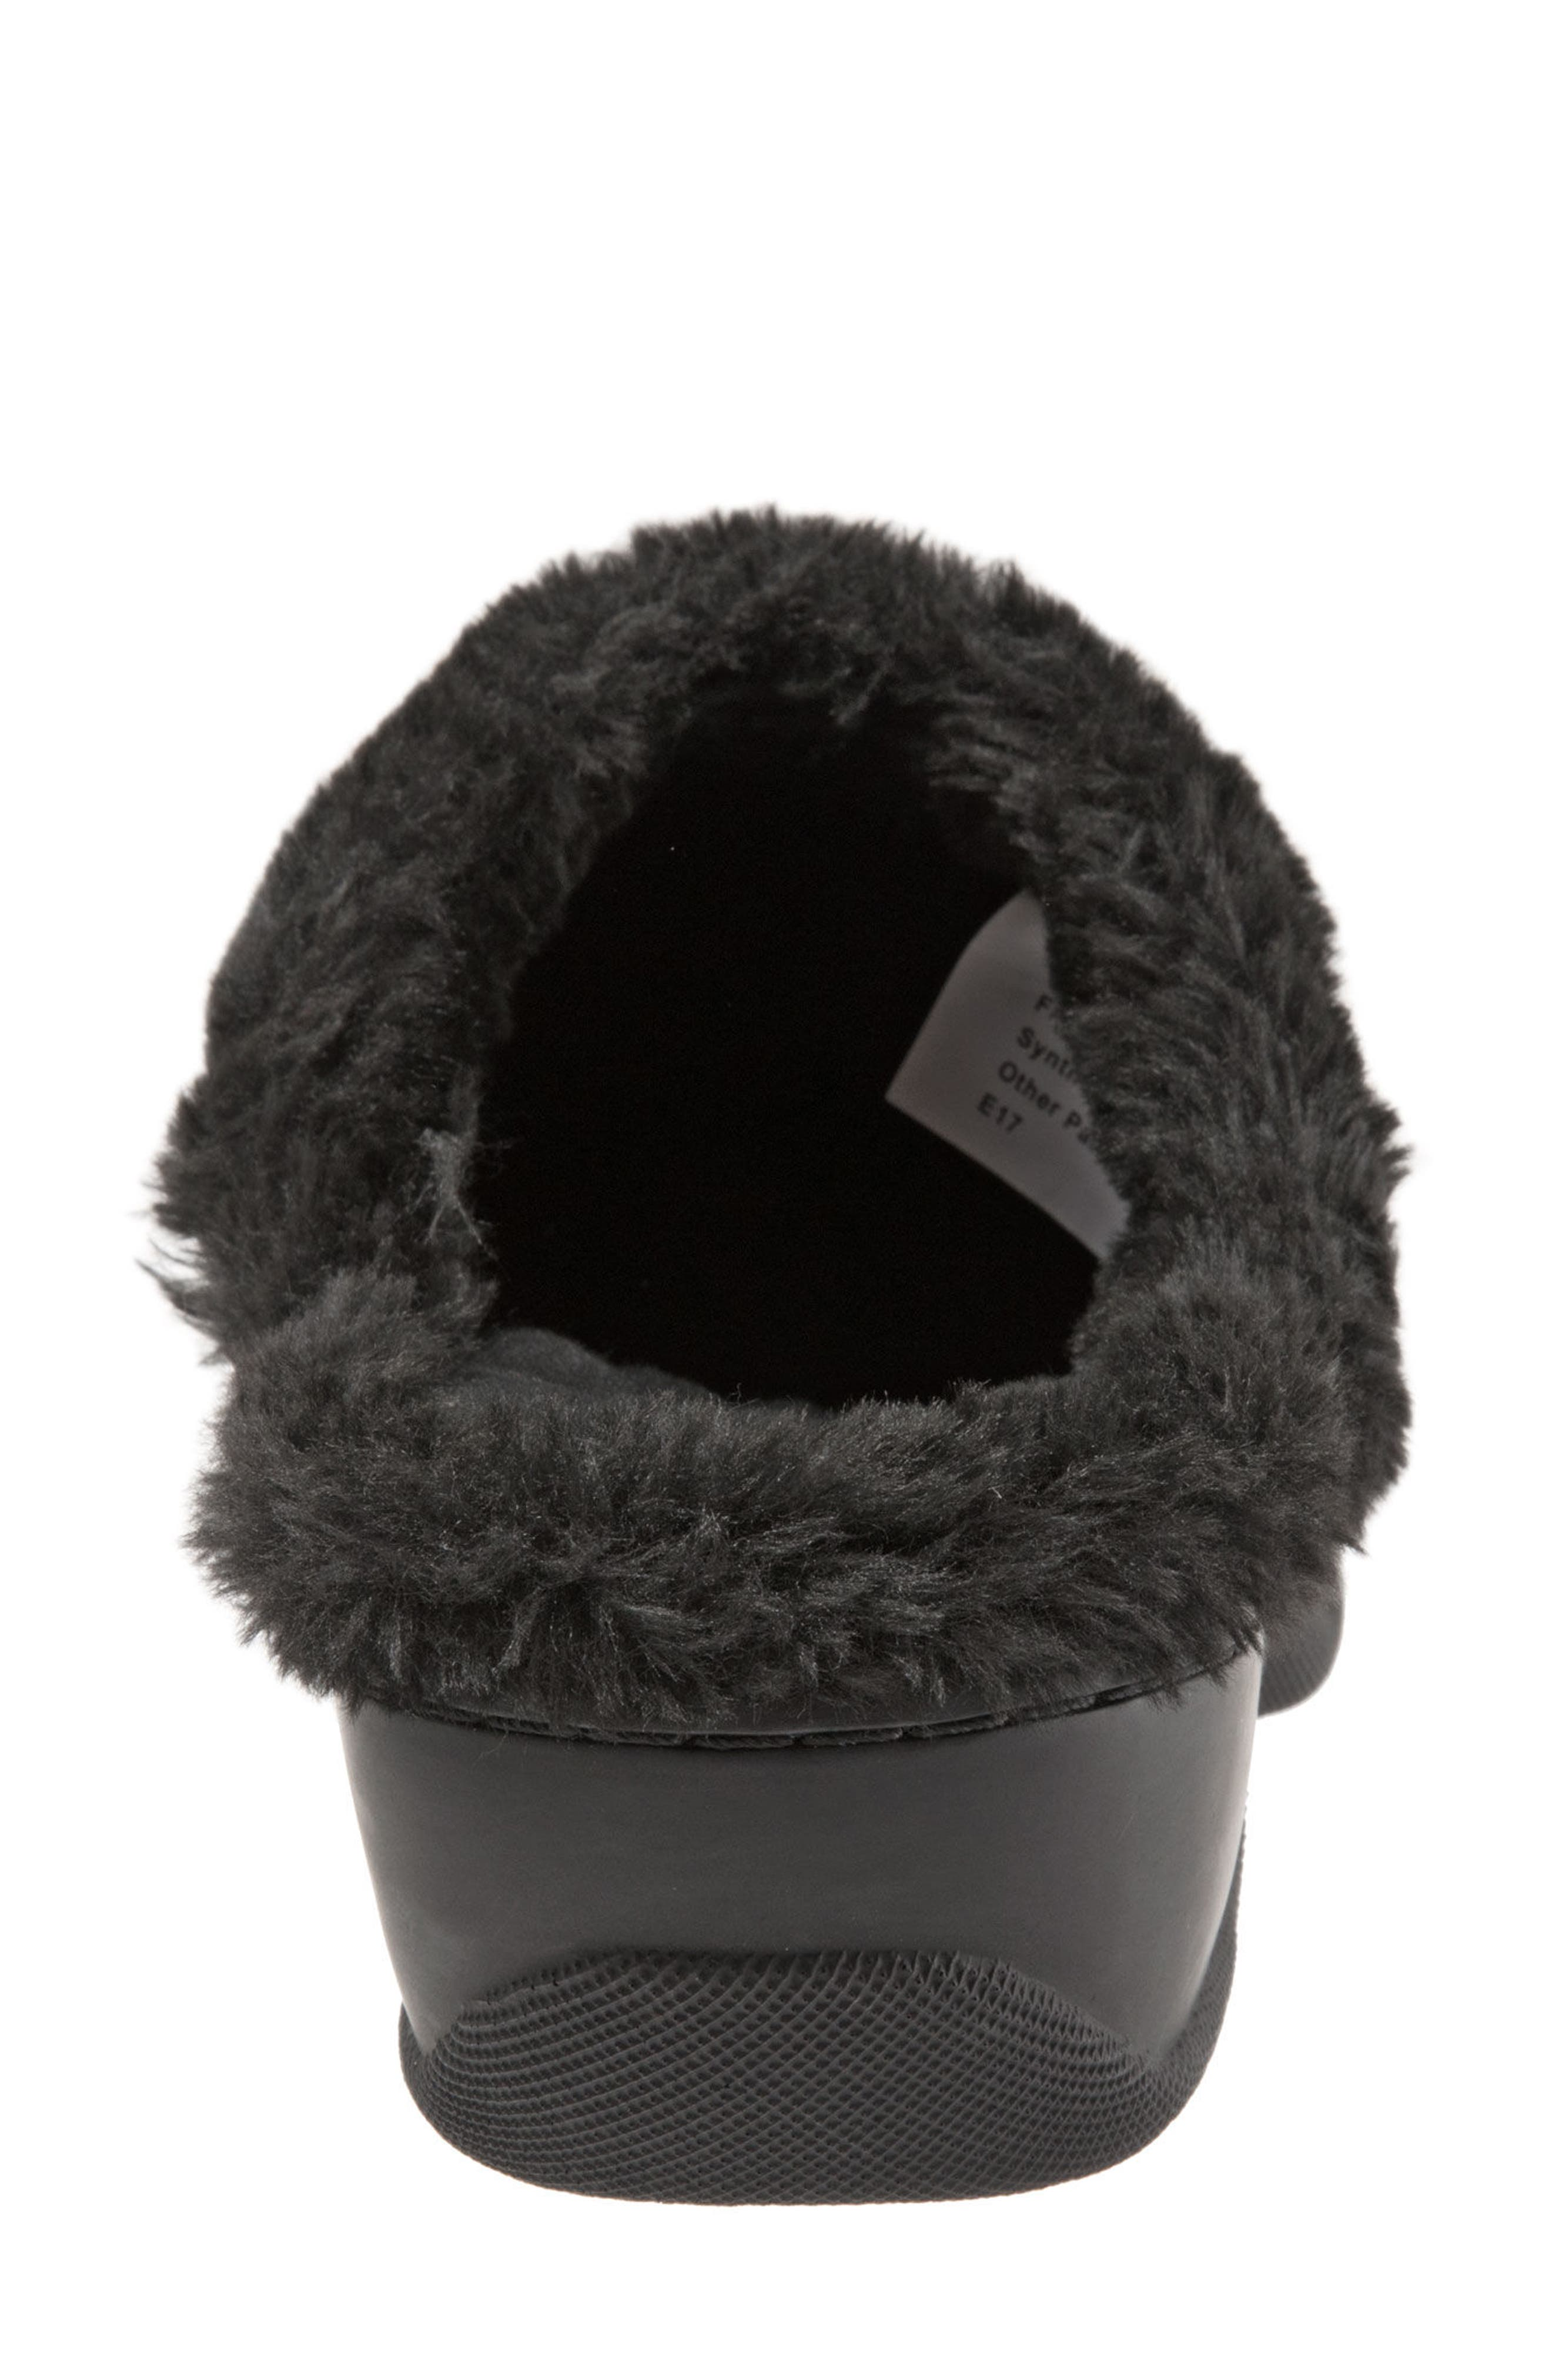 Abigail Clog with Faux Shearling Trim,                             Alternate thumbnail 7, color,                             004